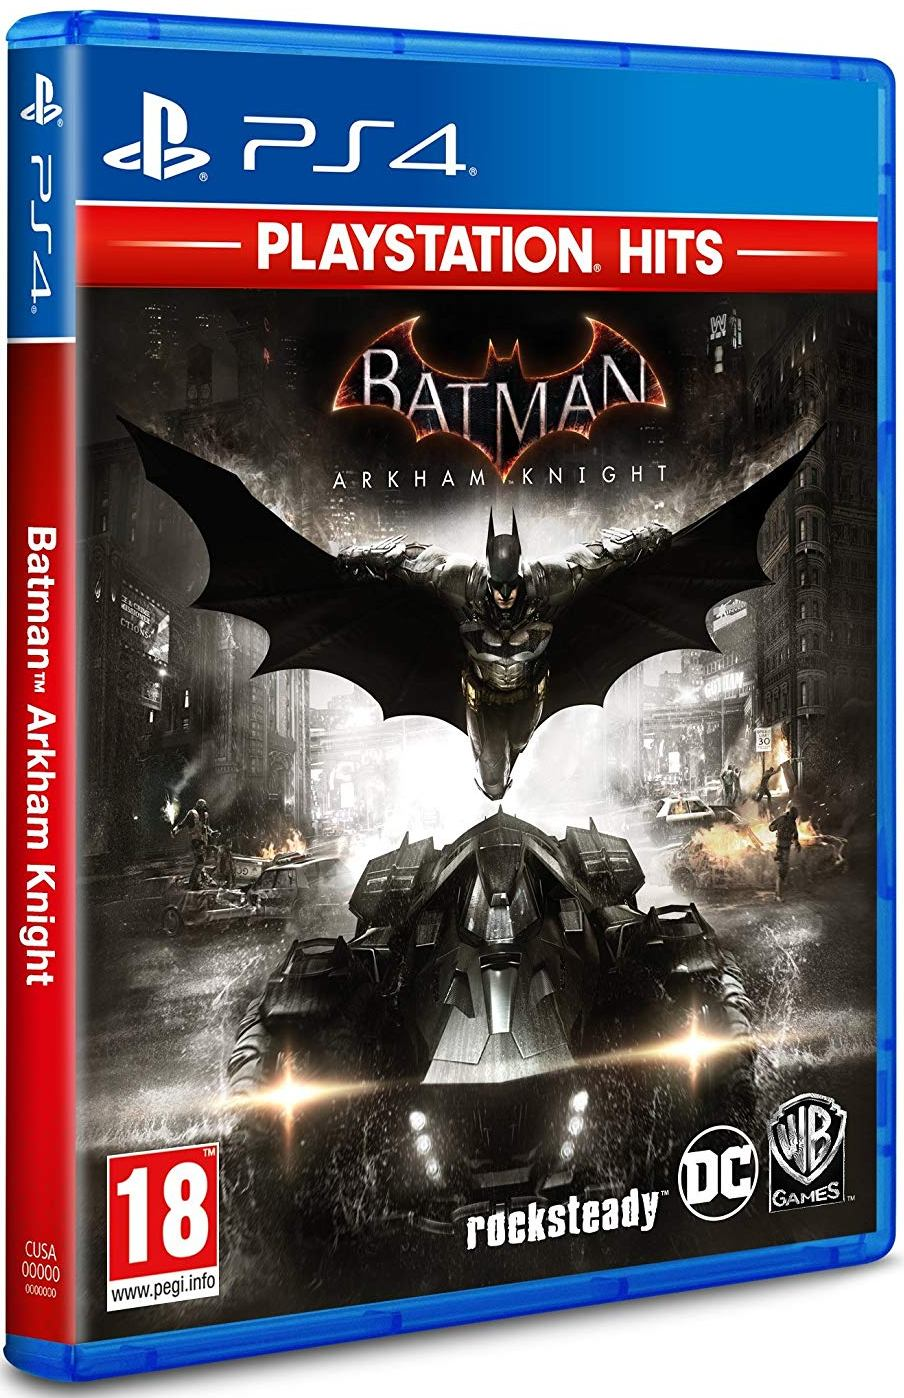 Batman: Arkham Knight PLAYSTATION HITS - PS4